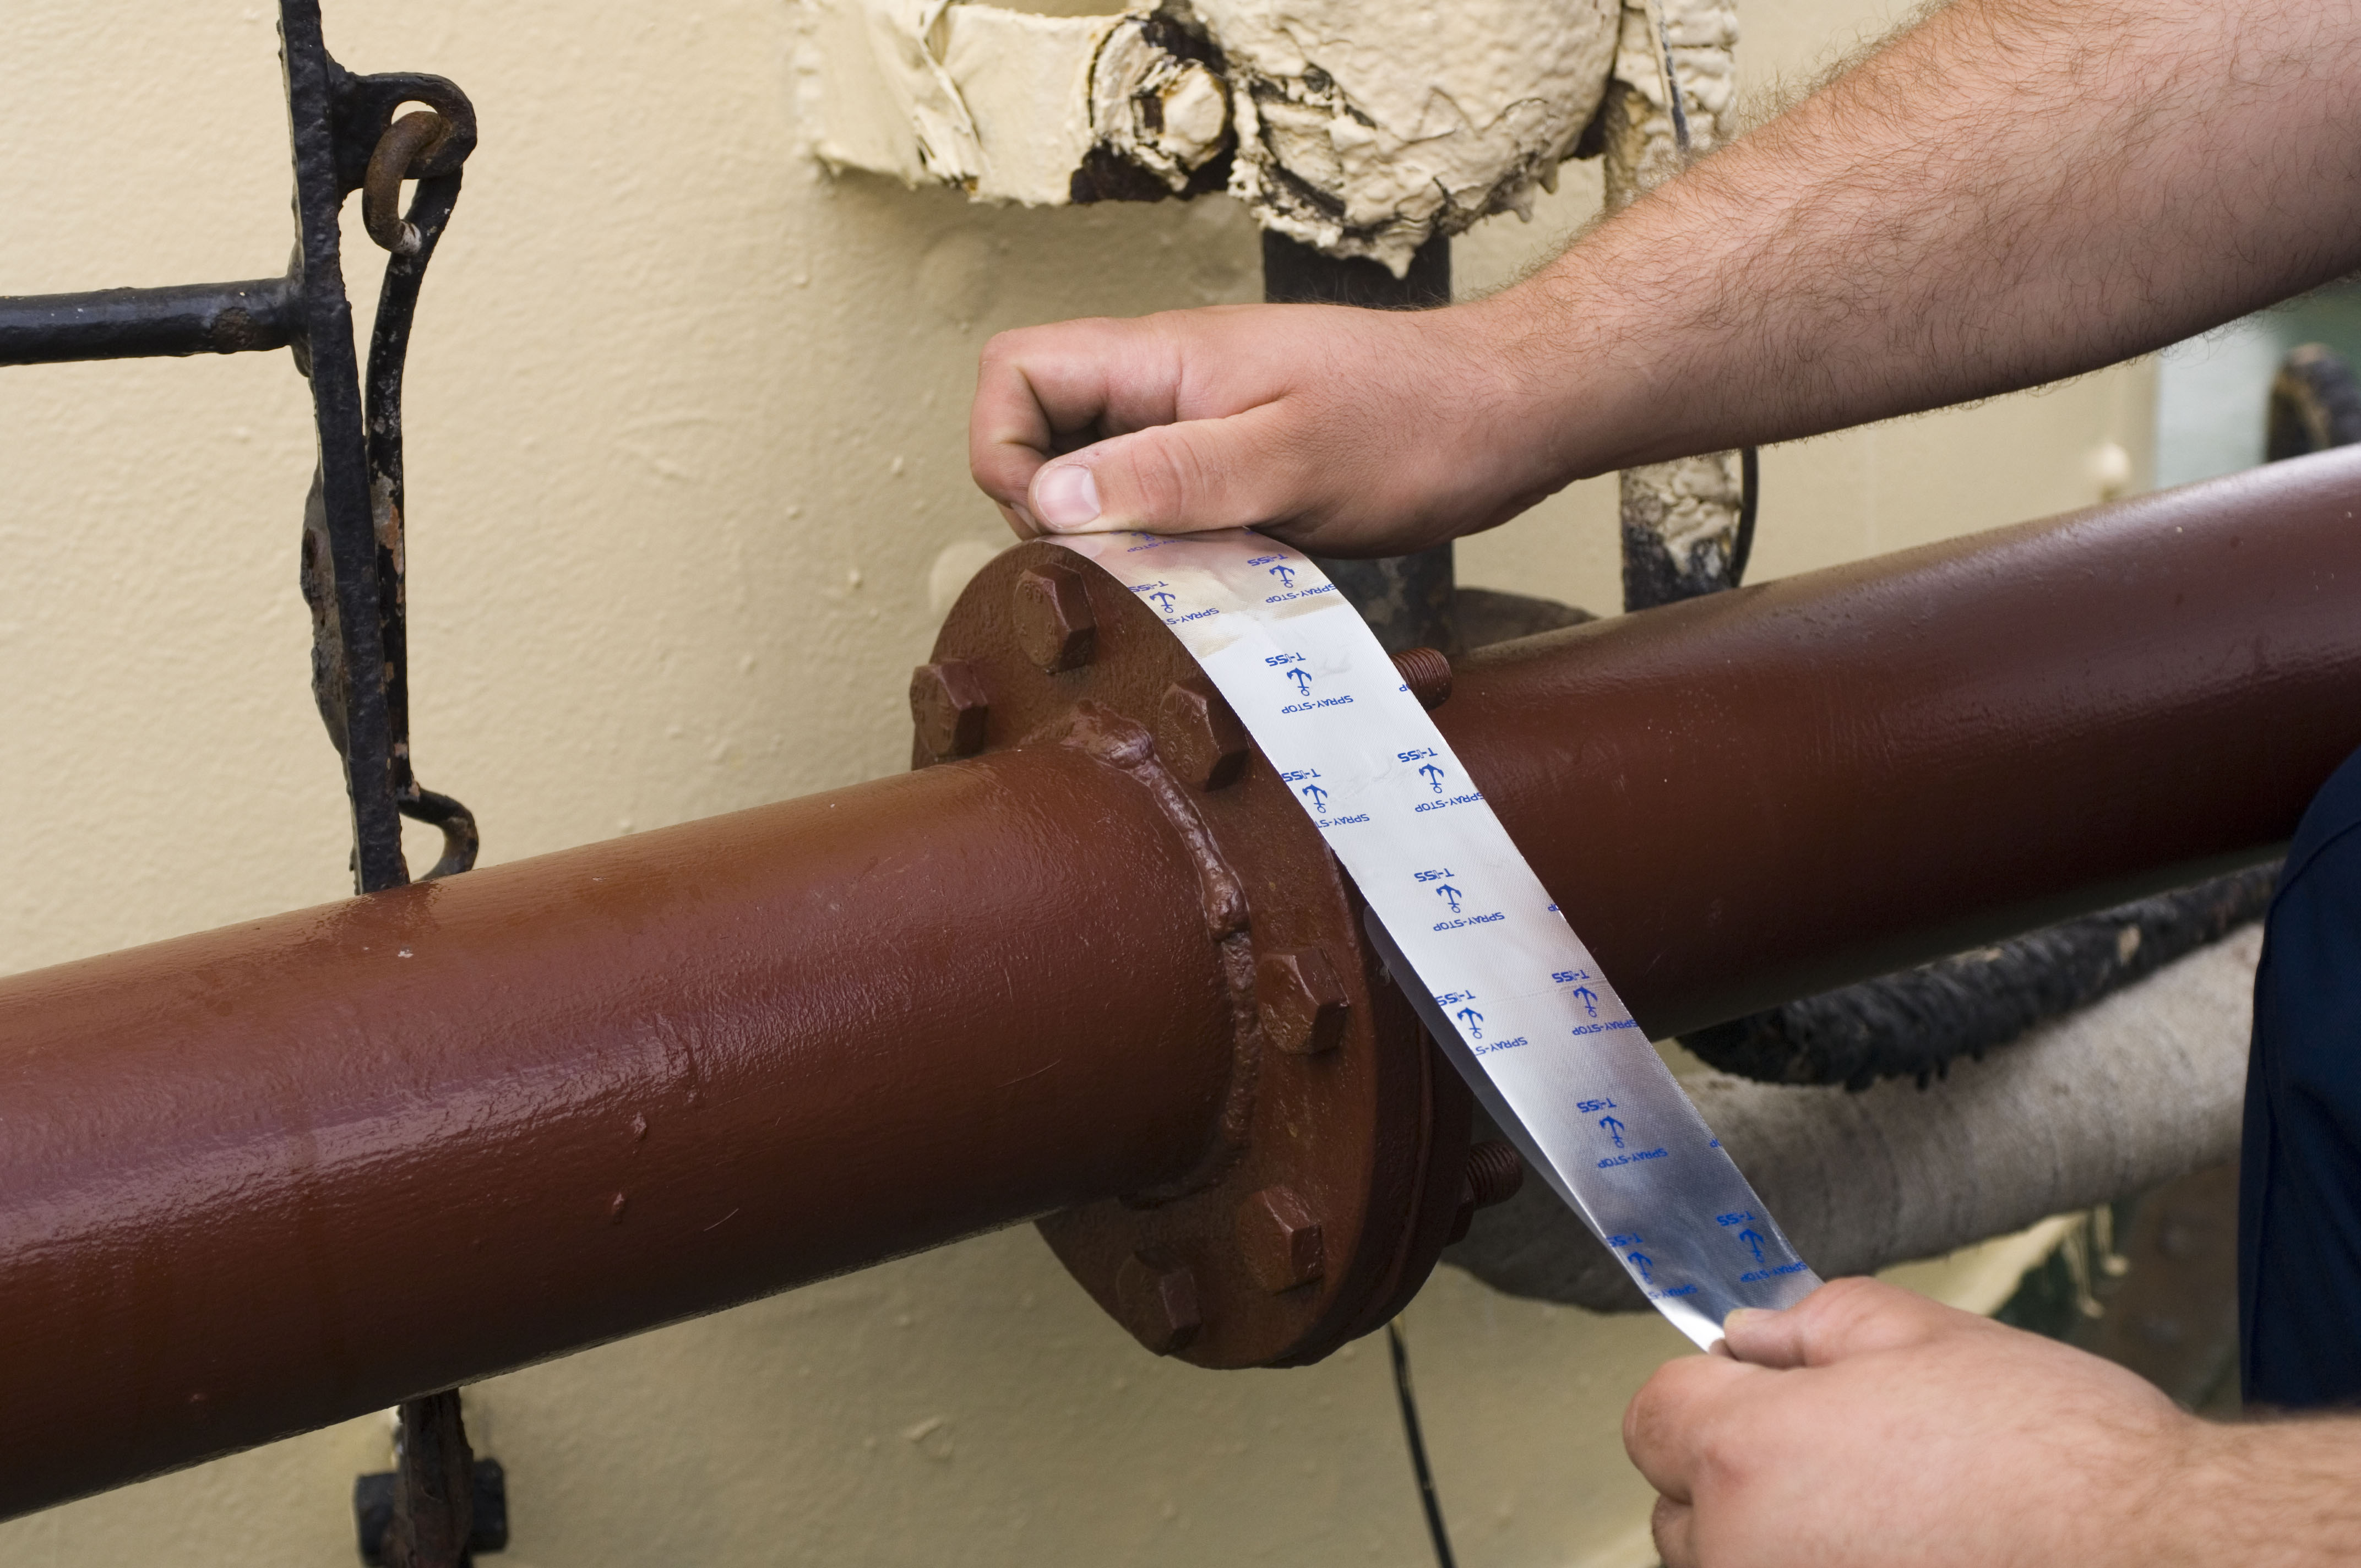 Psp Marine Tapes Latest Products Press Releases And